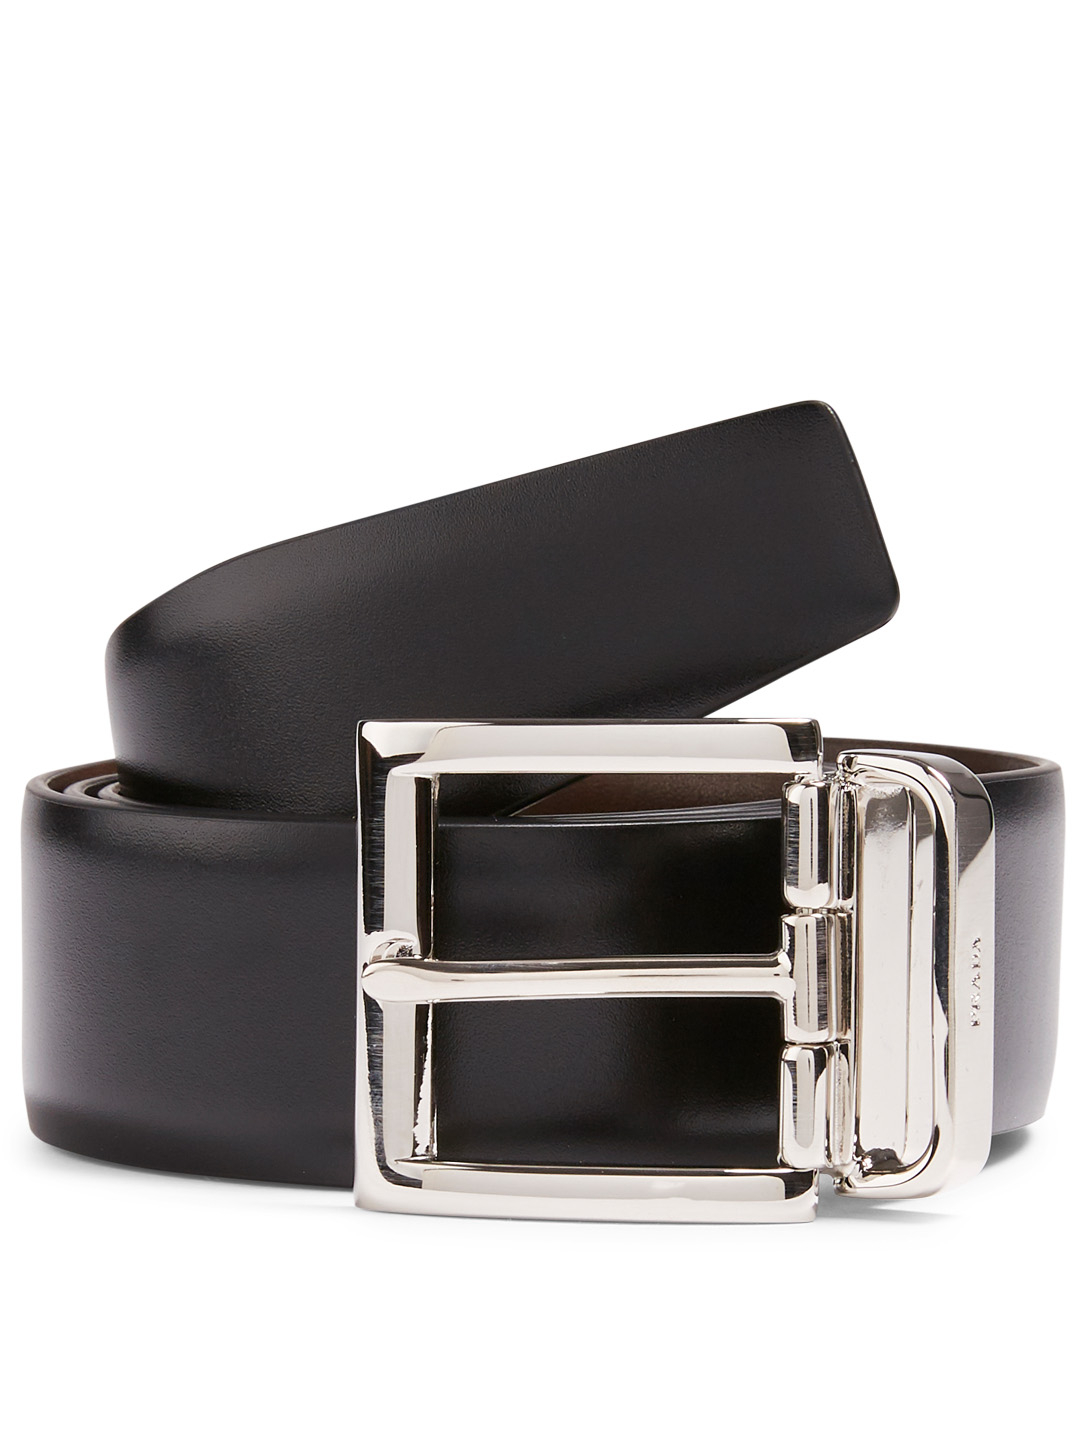 PRADA Reversible Saffiano Leather Belt Men's Black